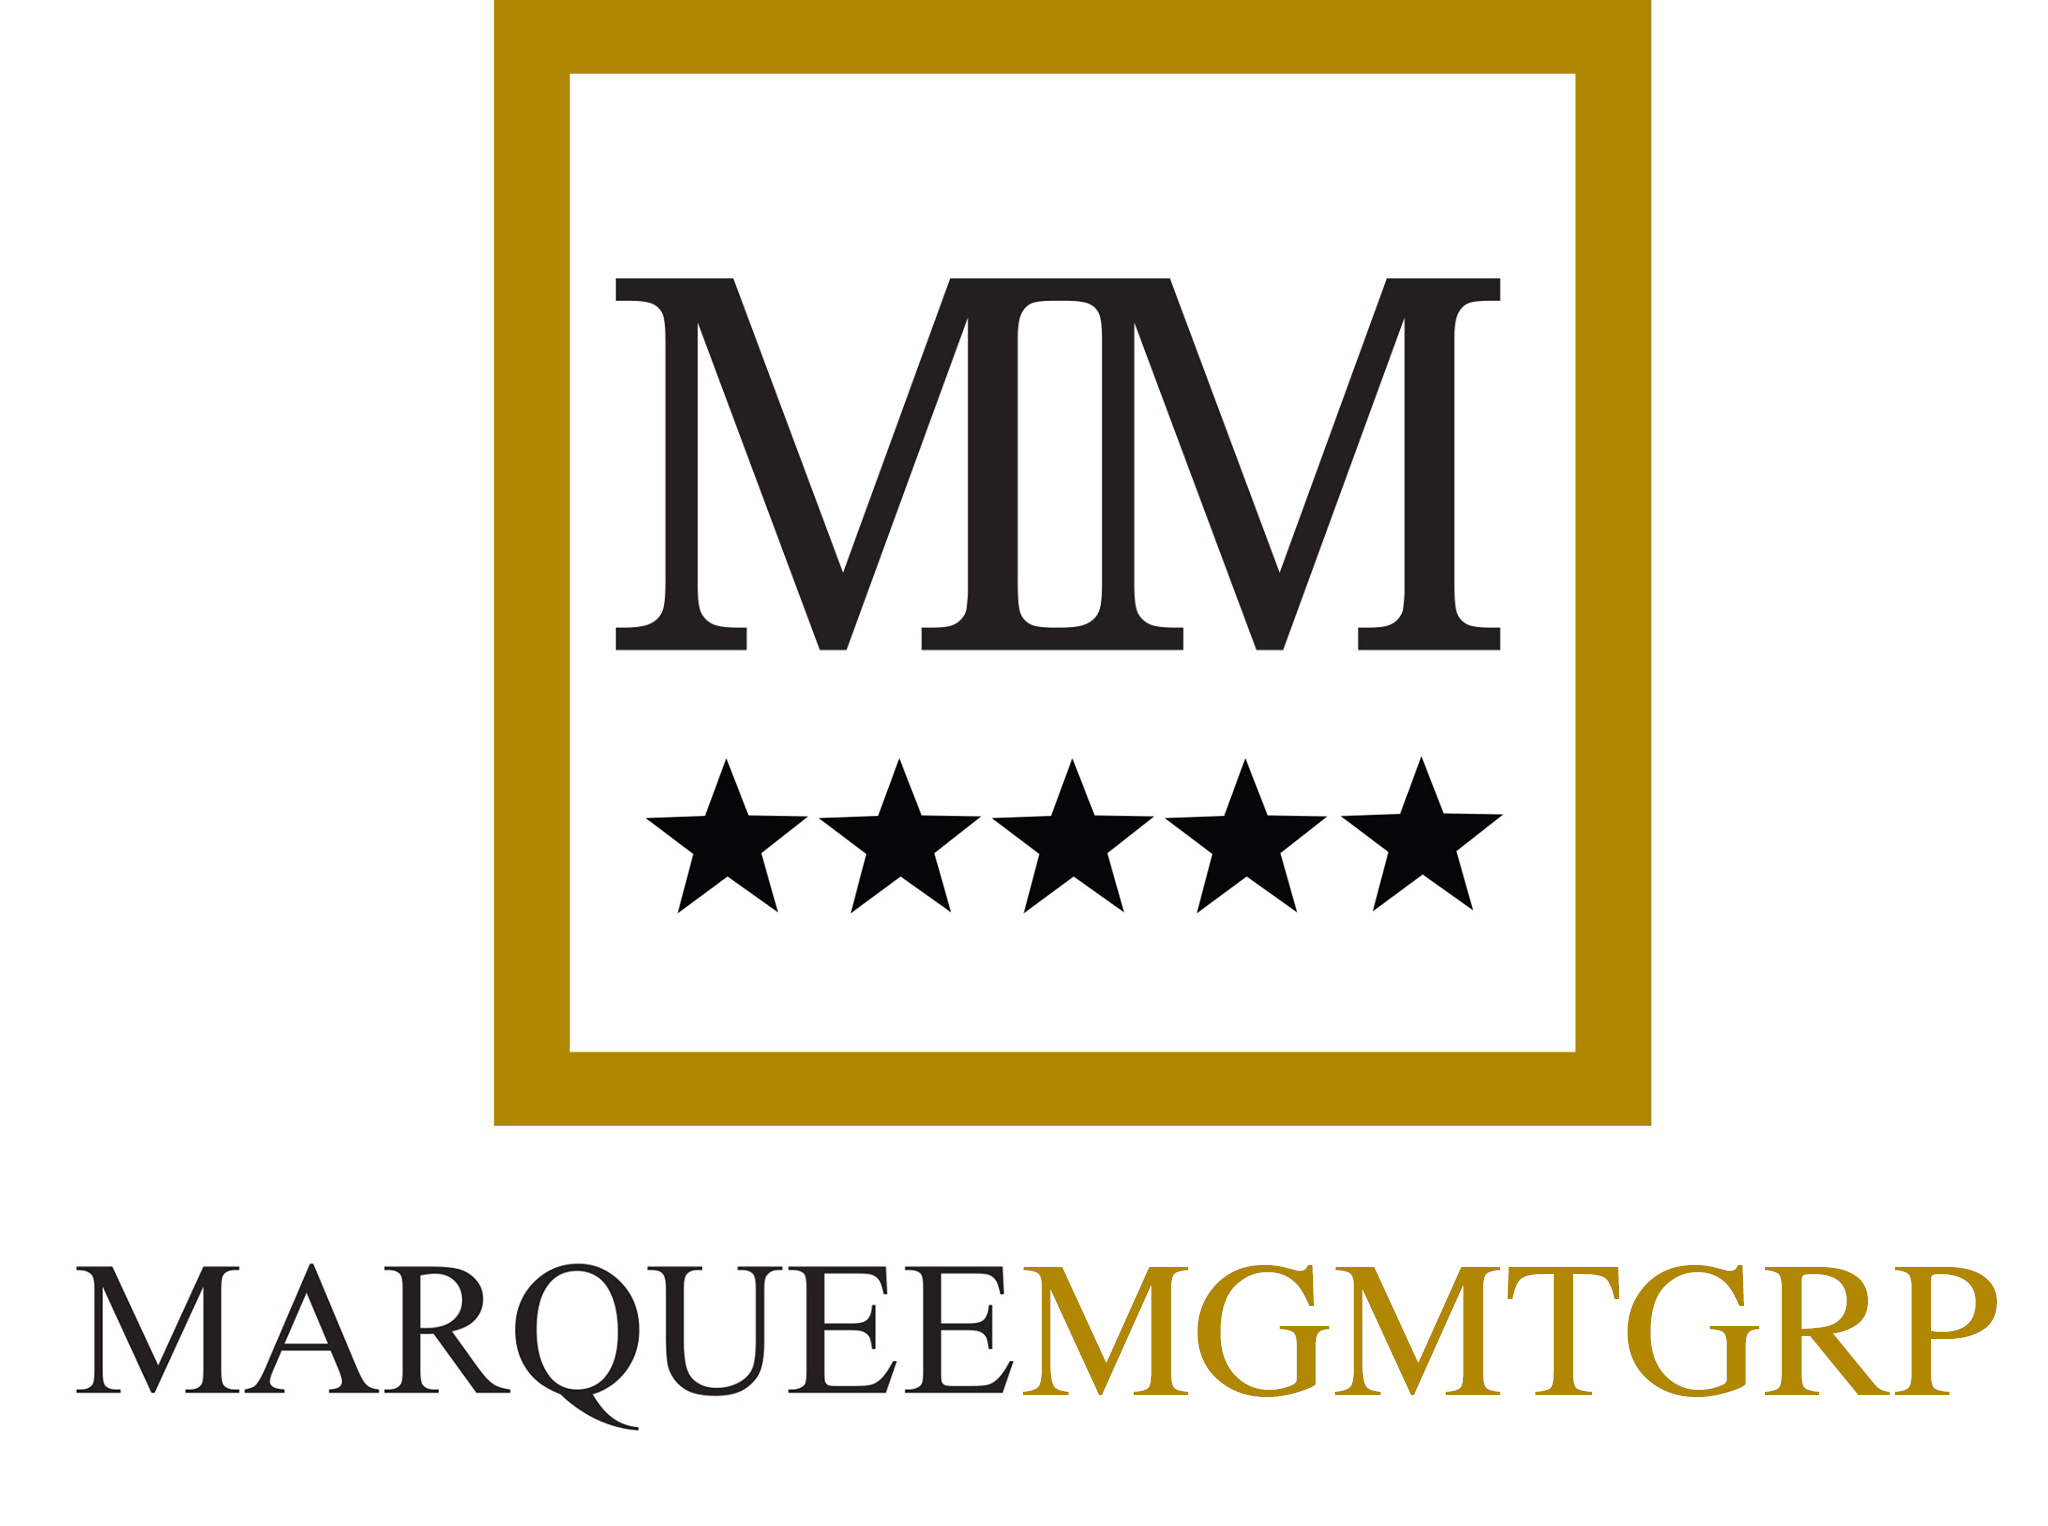 Marquee Management Group, LLC